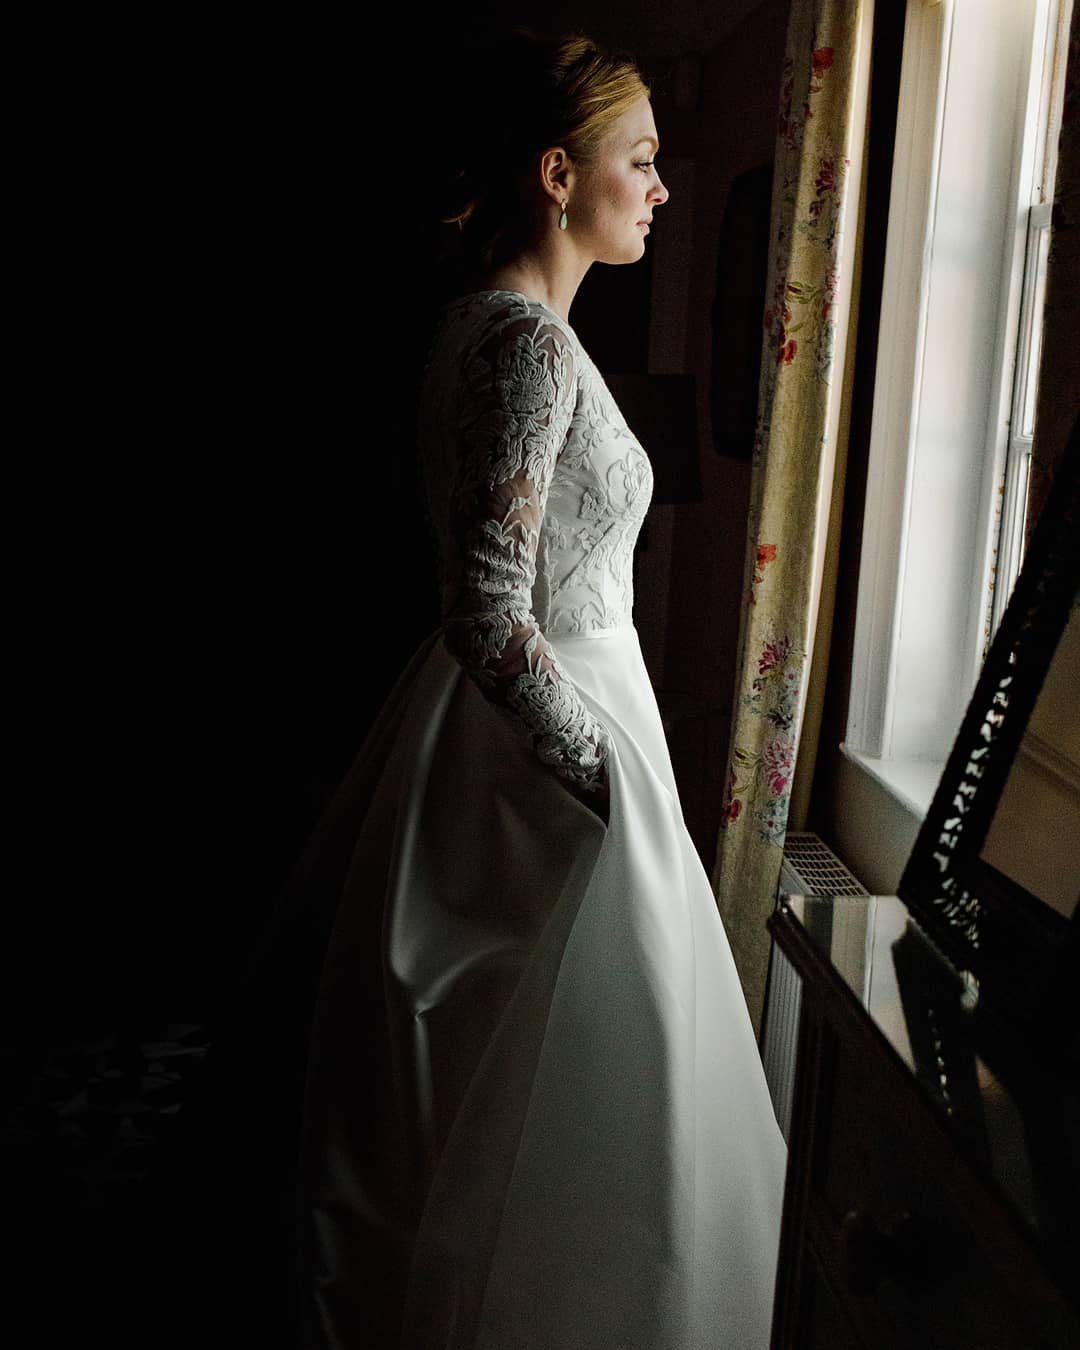 brighton bride looking out window